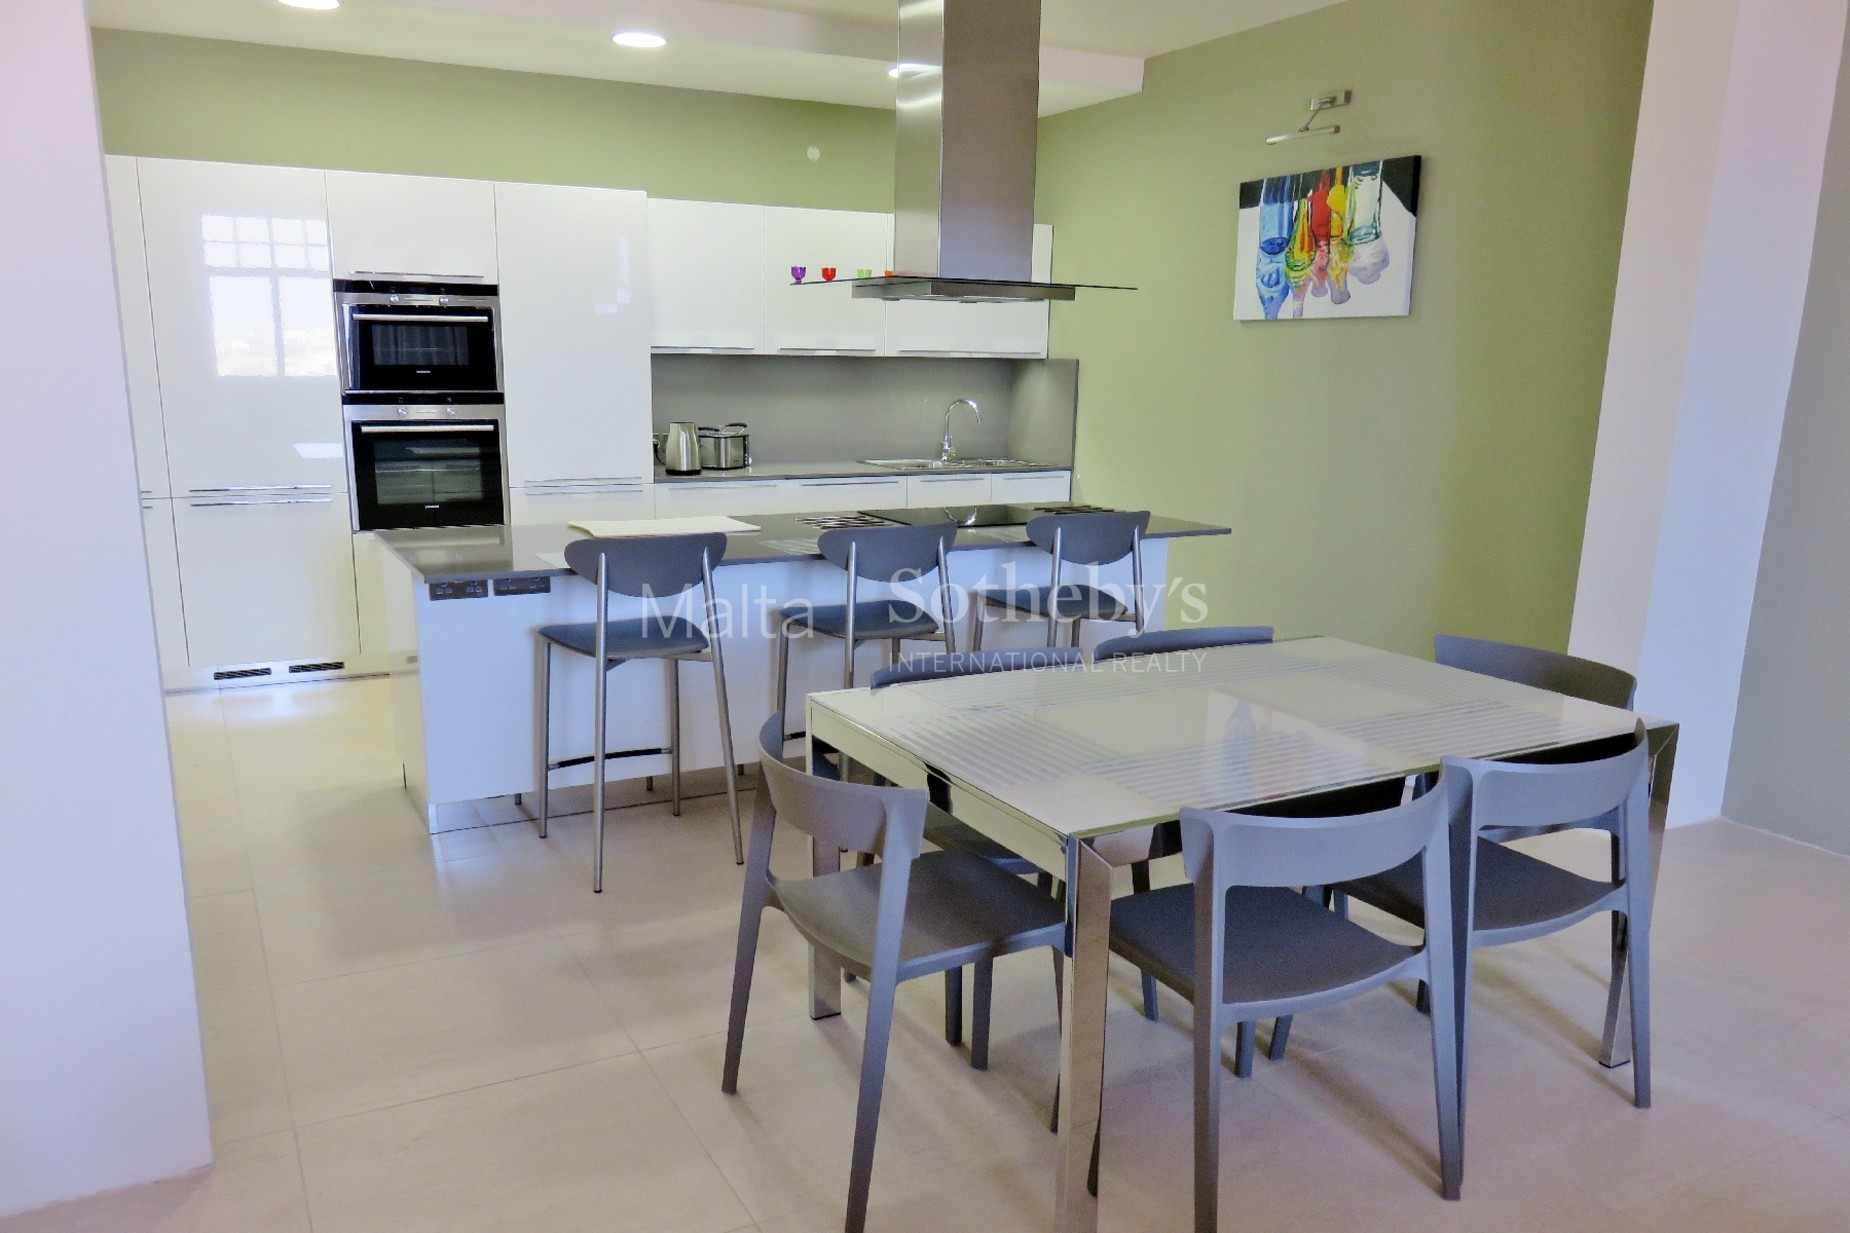 3 bed Apartment For Rent in Valletta, Valletta - thumb 8